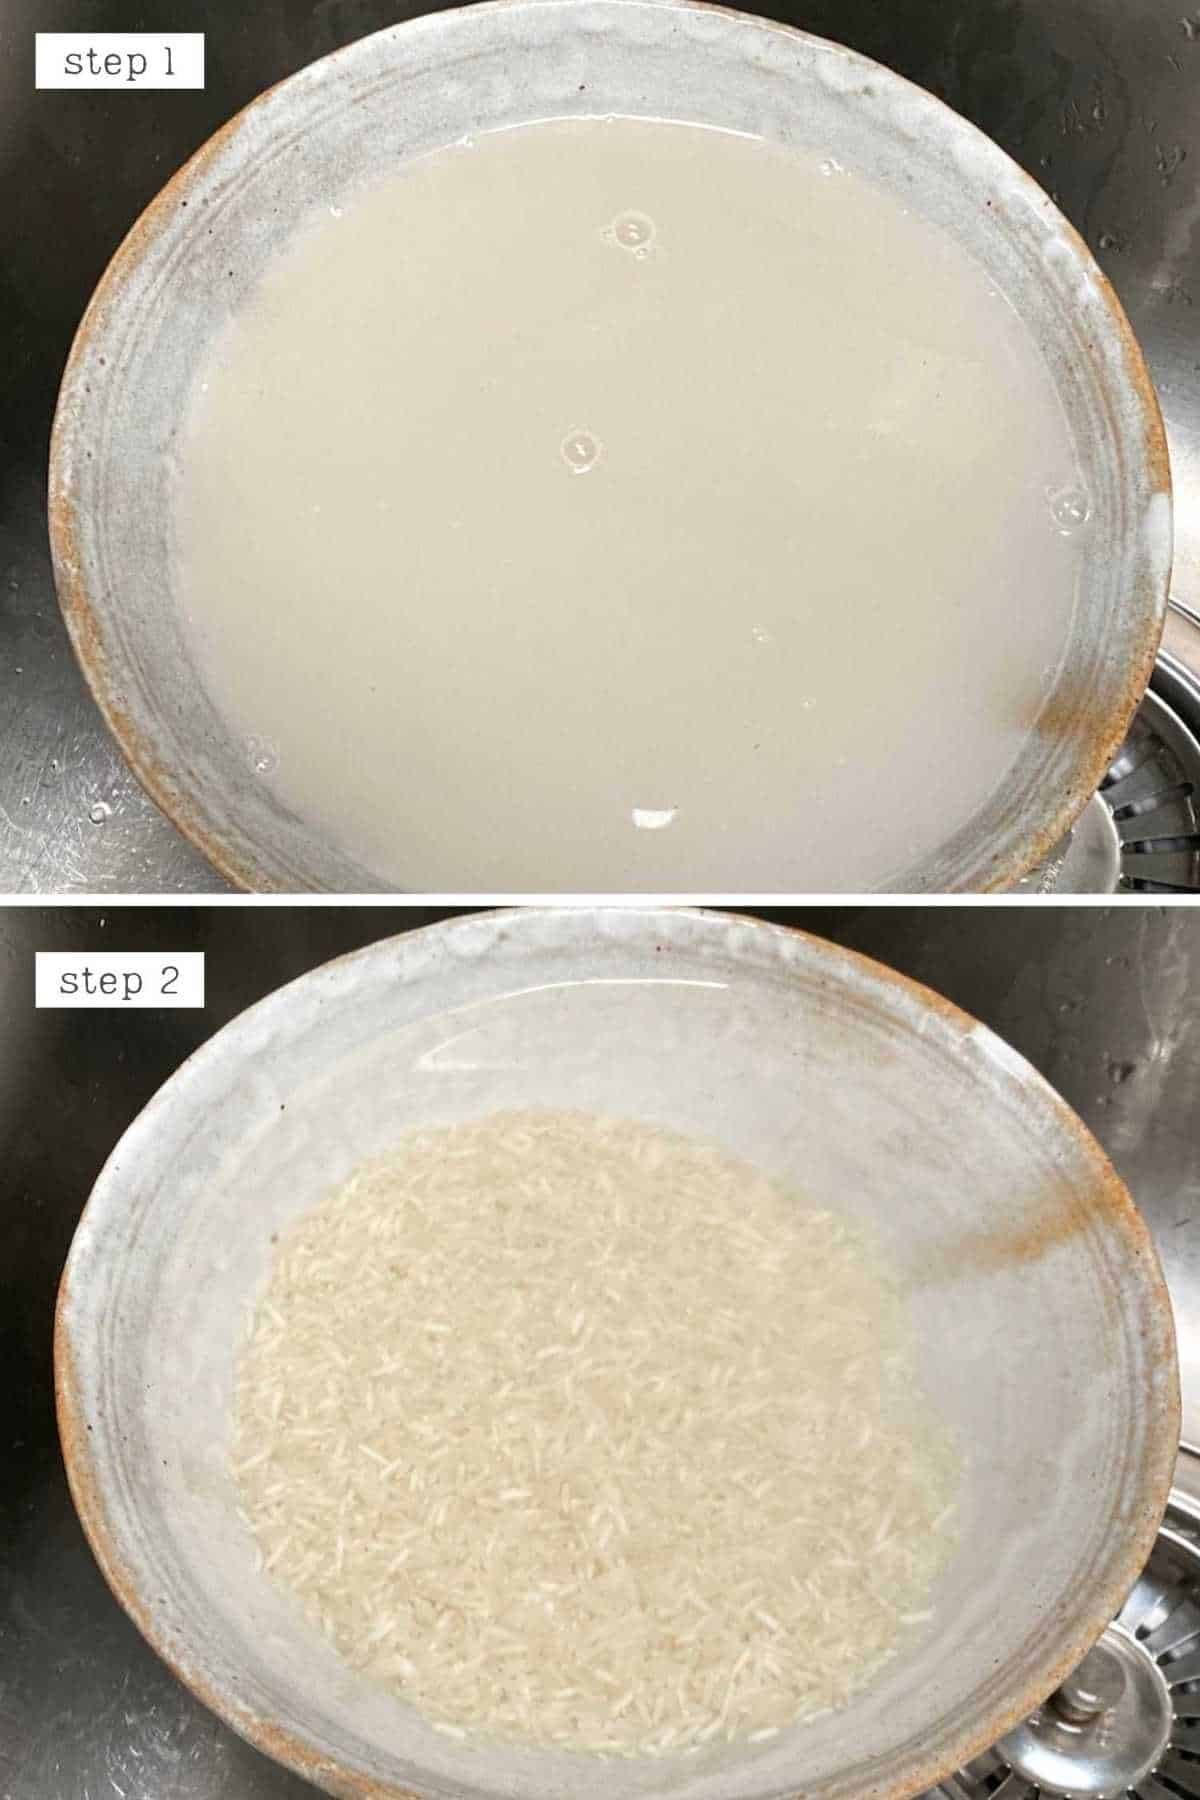 Steps for rinsing basmati rice